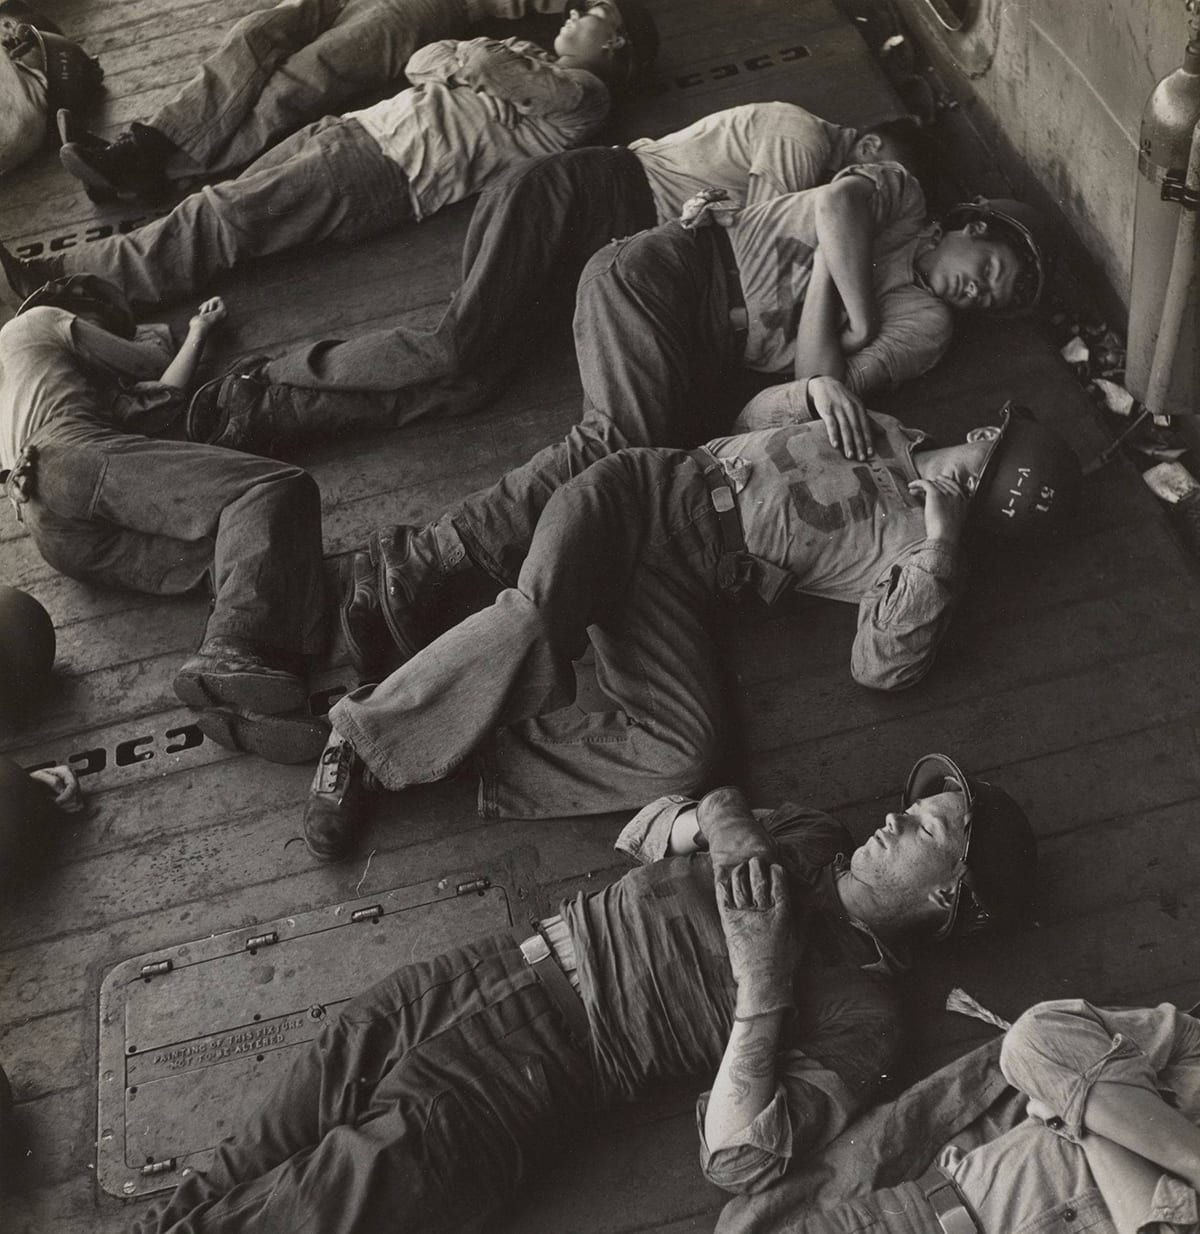 Victor Jorgenson, Untitled (relieved of their long ordeal and still in battle helmets, the exhausted crew sleeps) size: 10.5x10.5 inches, gelatin silver print. A square, black-and-white photograph of six young male soldiers lying asleep on the deck of a ship. The soldiers are viewed from above and are positioned diagonally across the photo with their heads towards the top right and feet towards the bottom left. At far left, one soldier lies on his side near the other soldier's feet. He is positioned vertically in the photo with his head near top left. They lay on their sides with their knees drawn up or on their backs and are fully clothed in khakis, boots, and sometimes helmets. The decking beneath them runs diagonally and parallel to the men. The photo captures portions of other soldiers also sleeping suggesting a crowded deck of sleeping men.